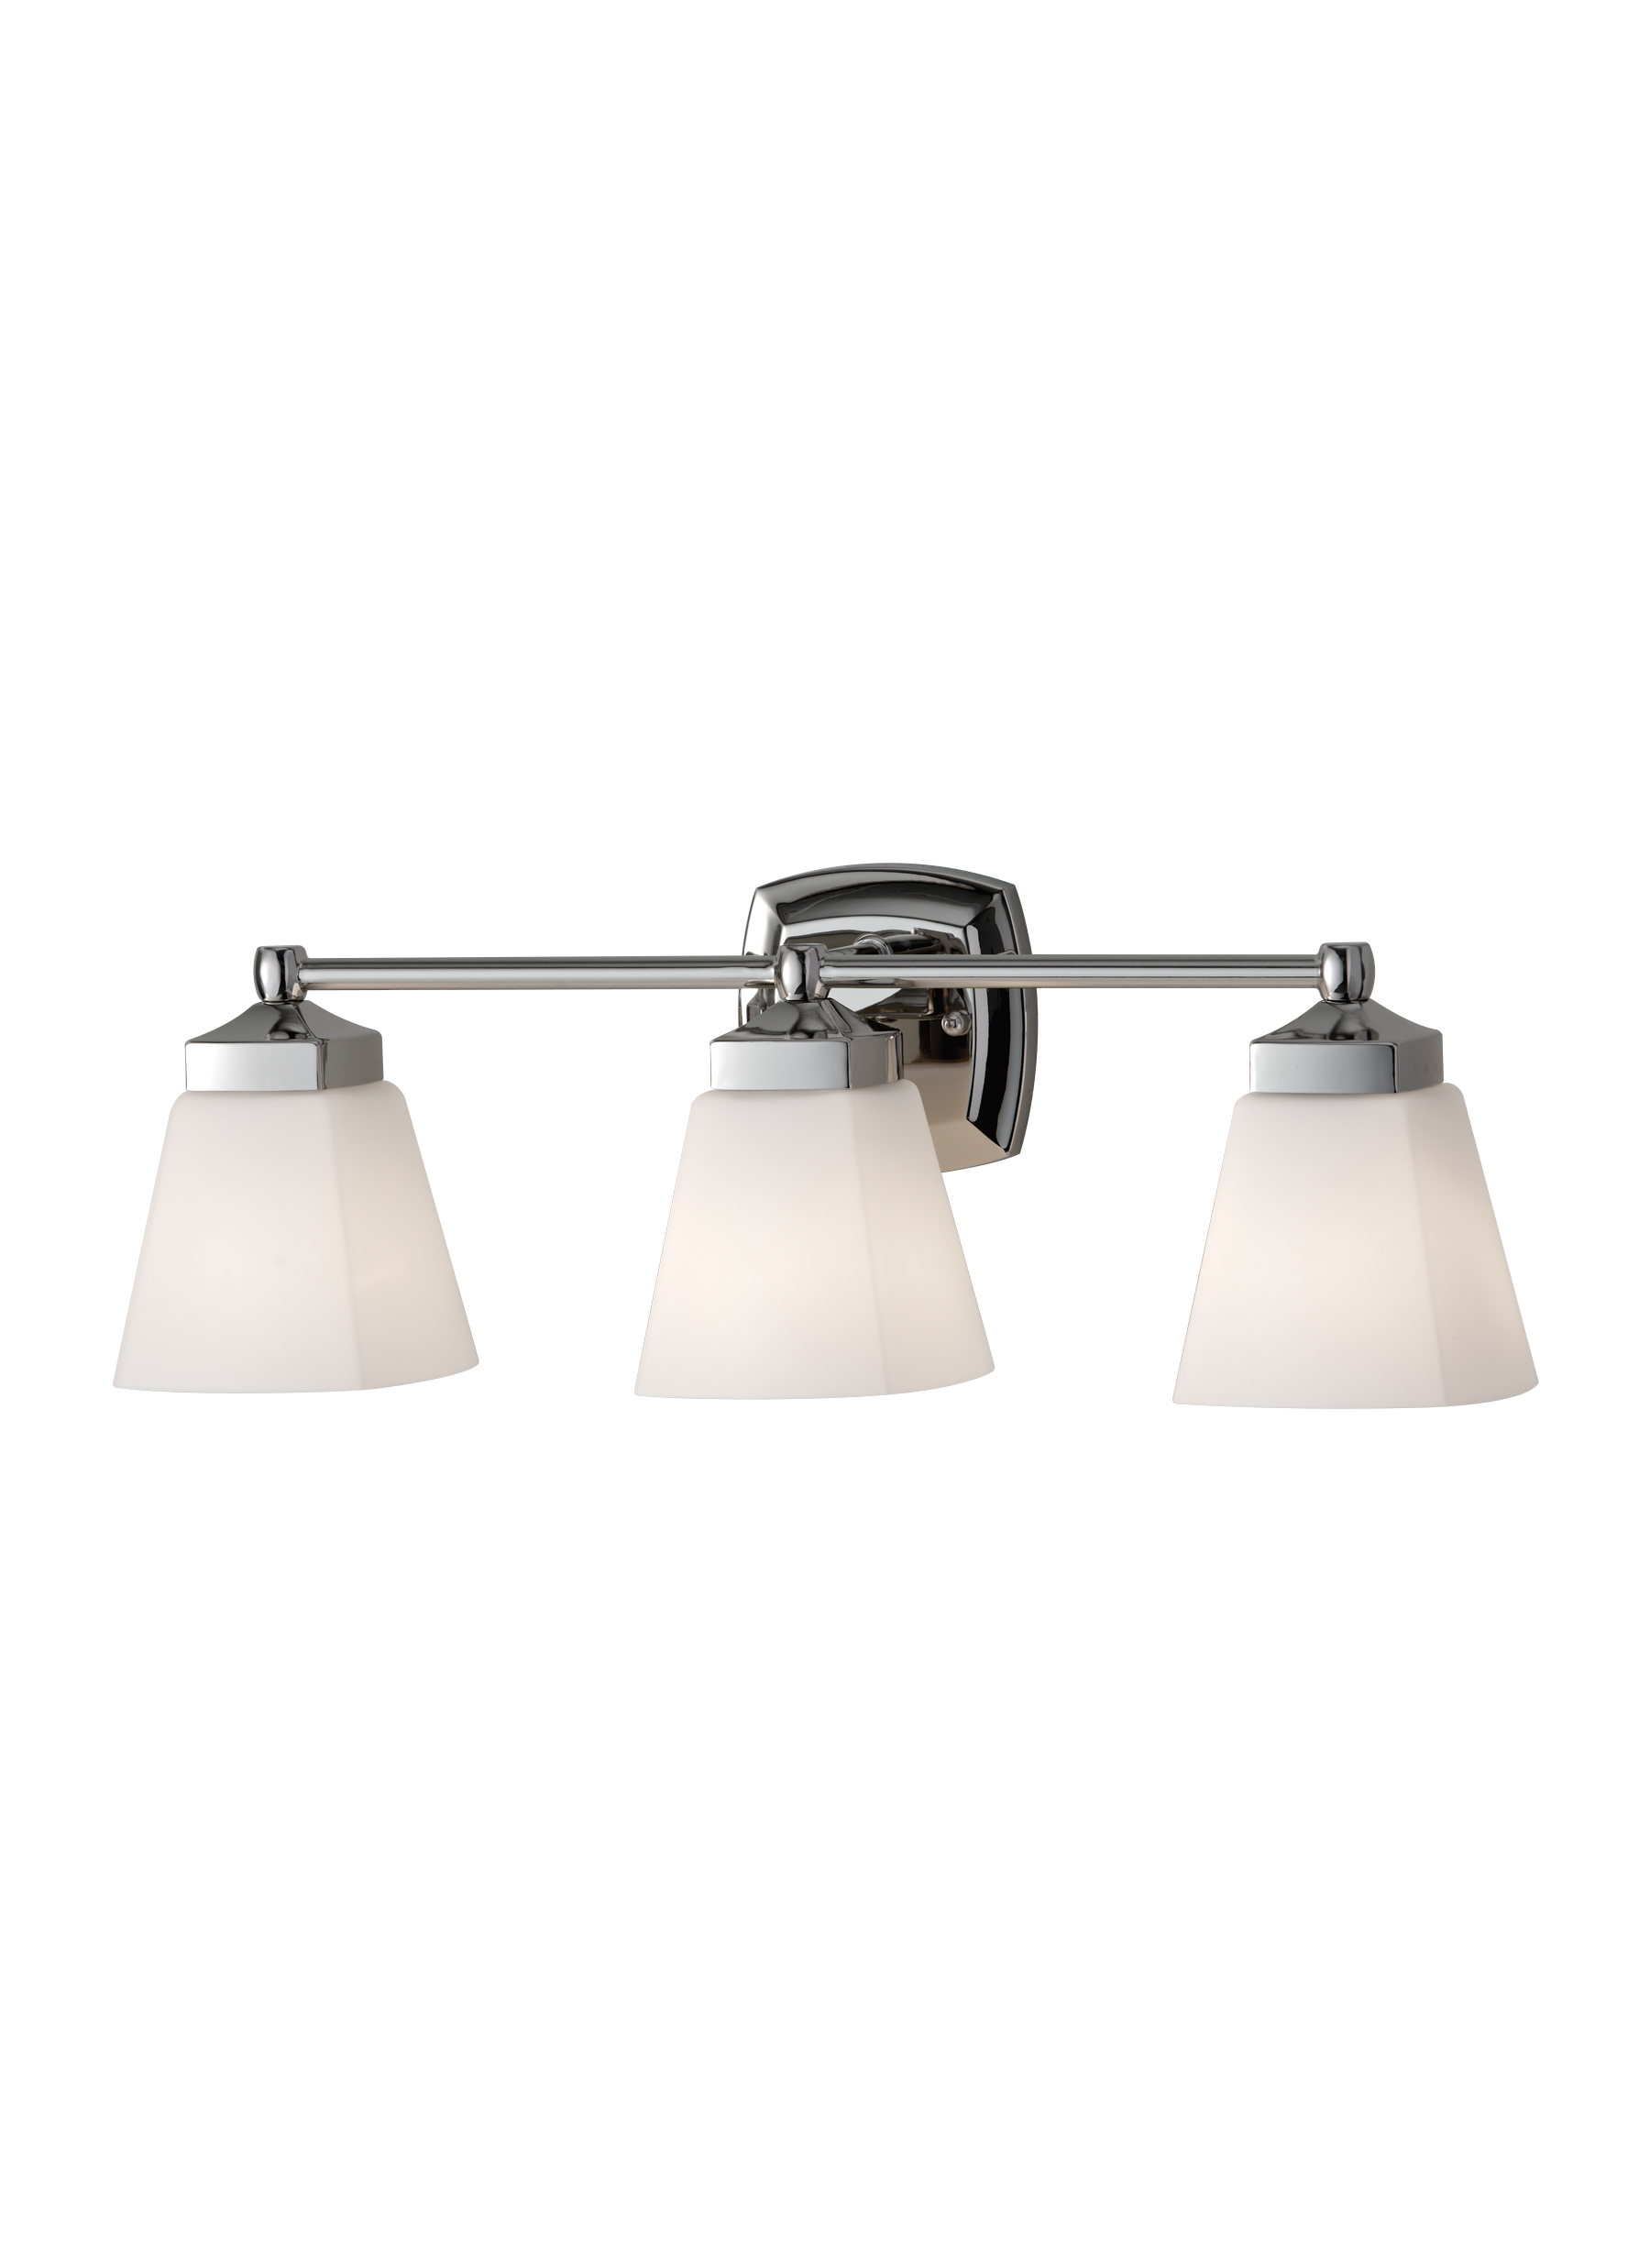 VSPNLight Vanity StripPolished Nickel - Polished nickel bathroom light fixtures